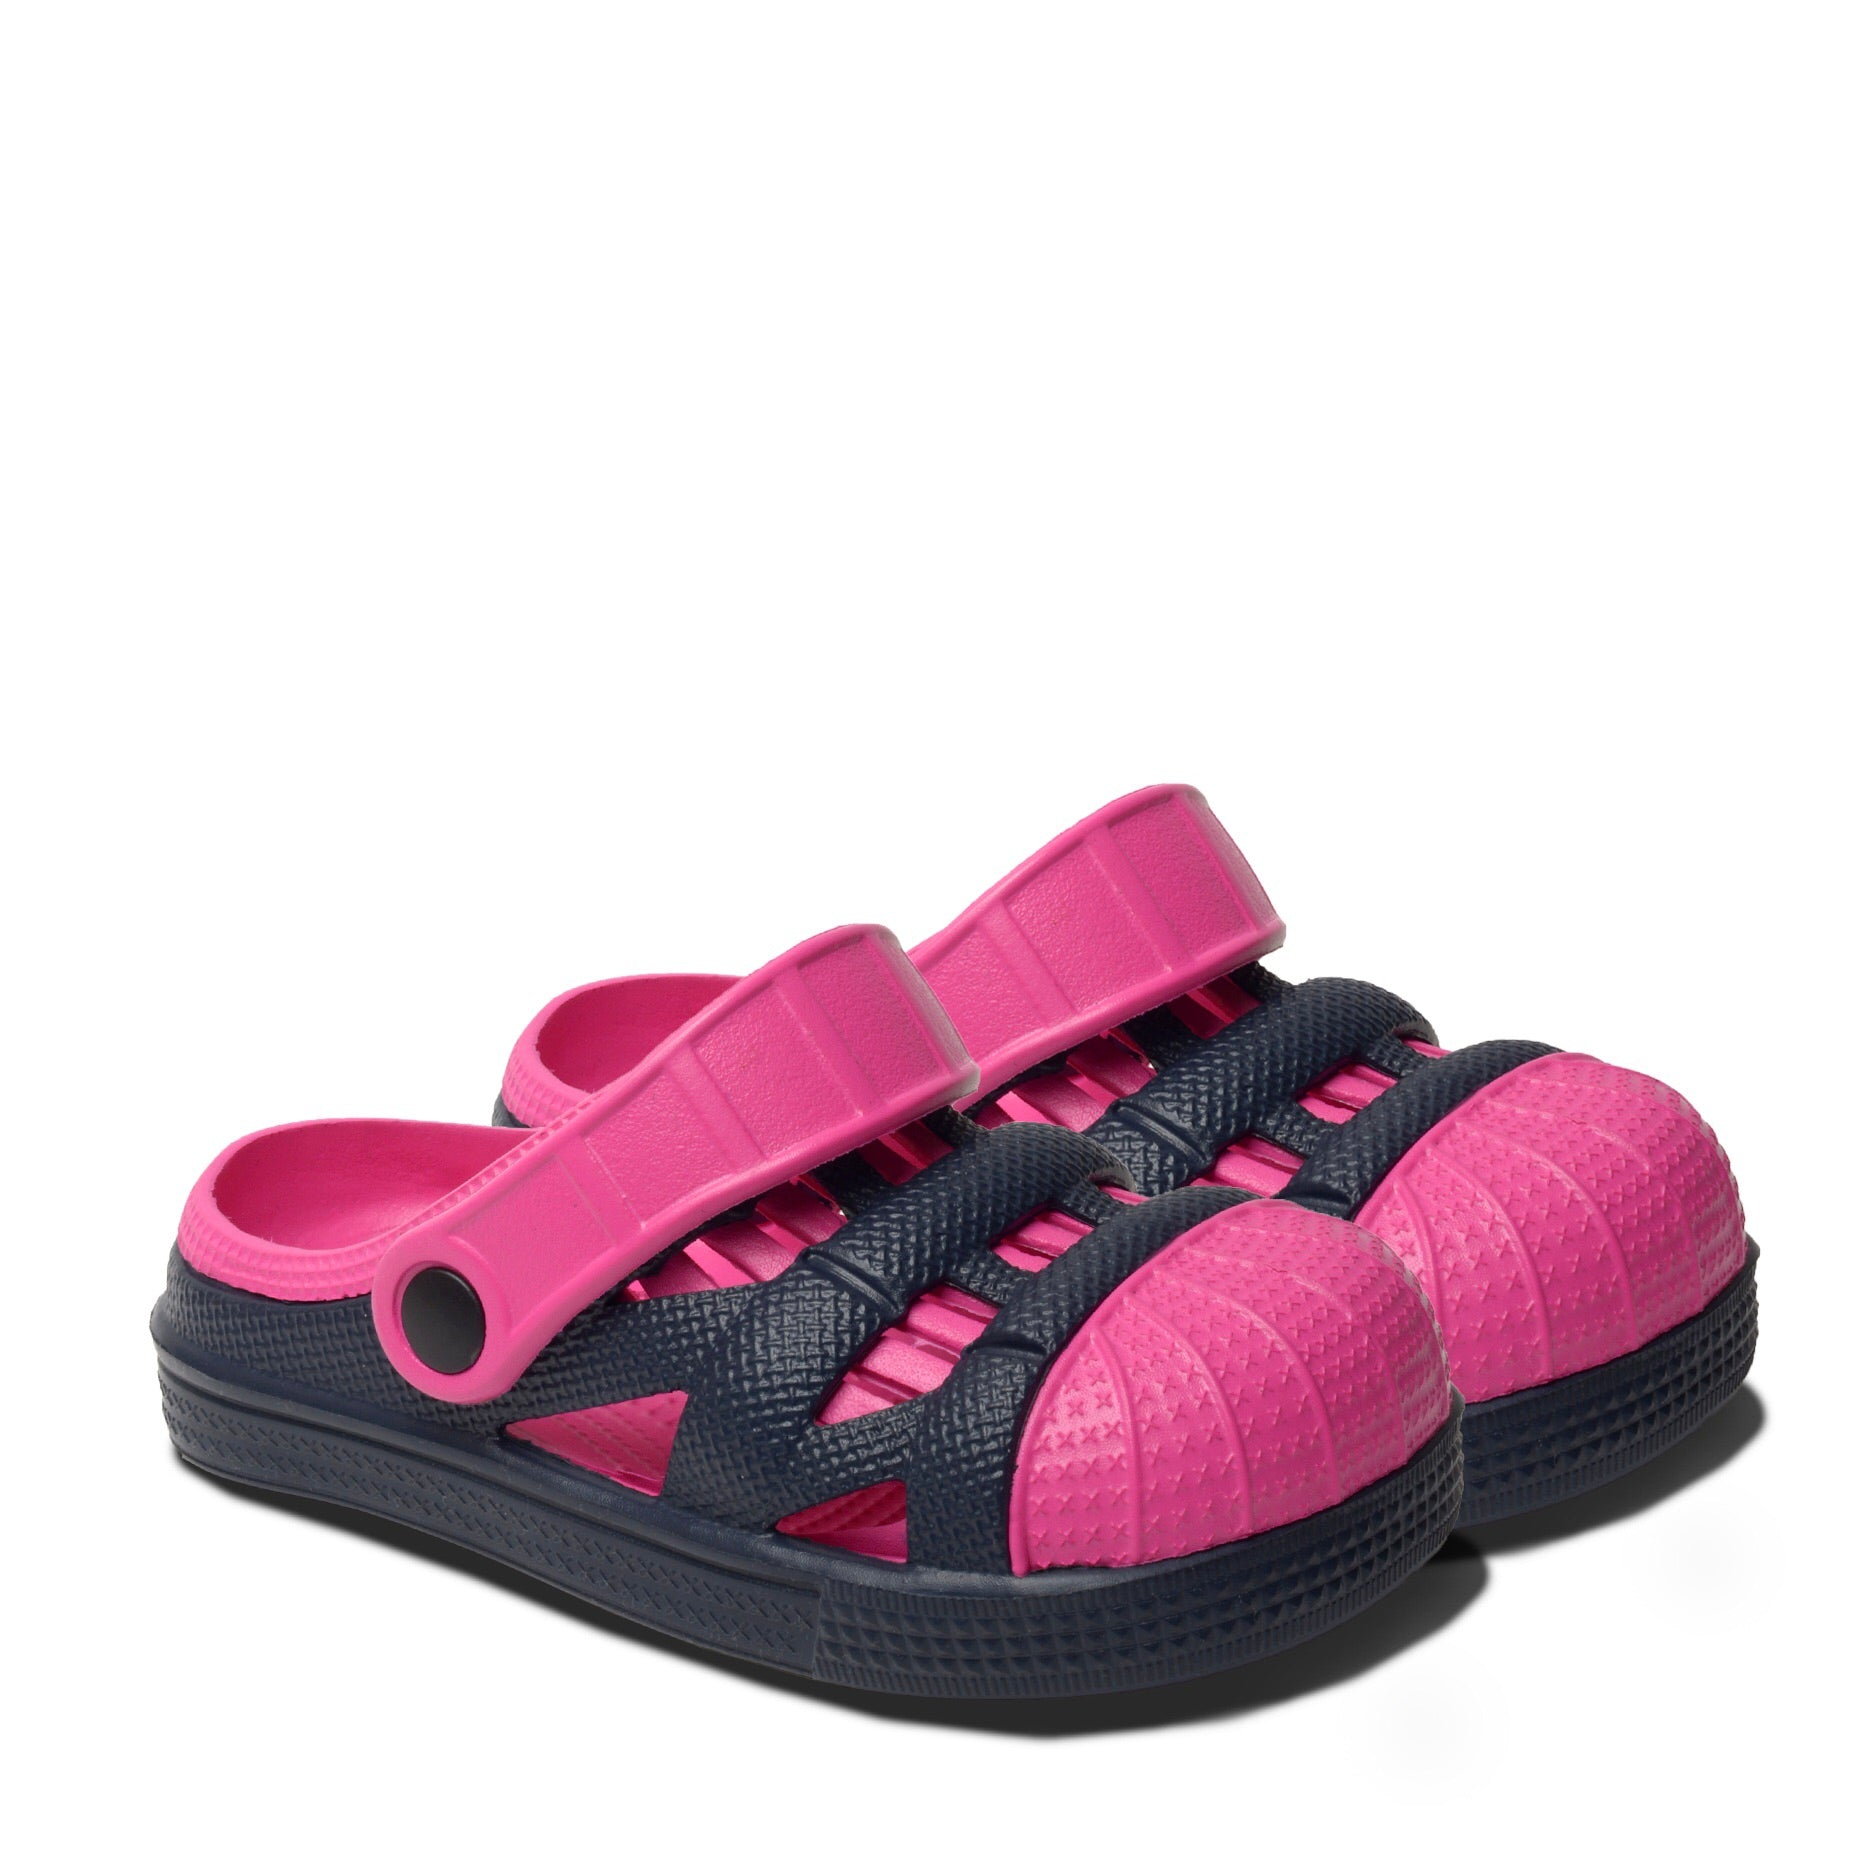 Kids Lightweight Sandals - Pink/Navy